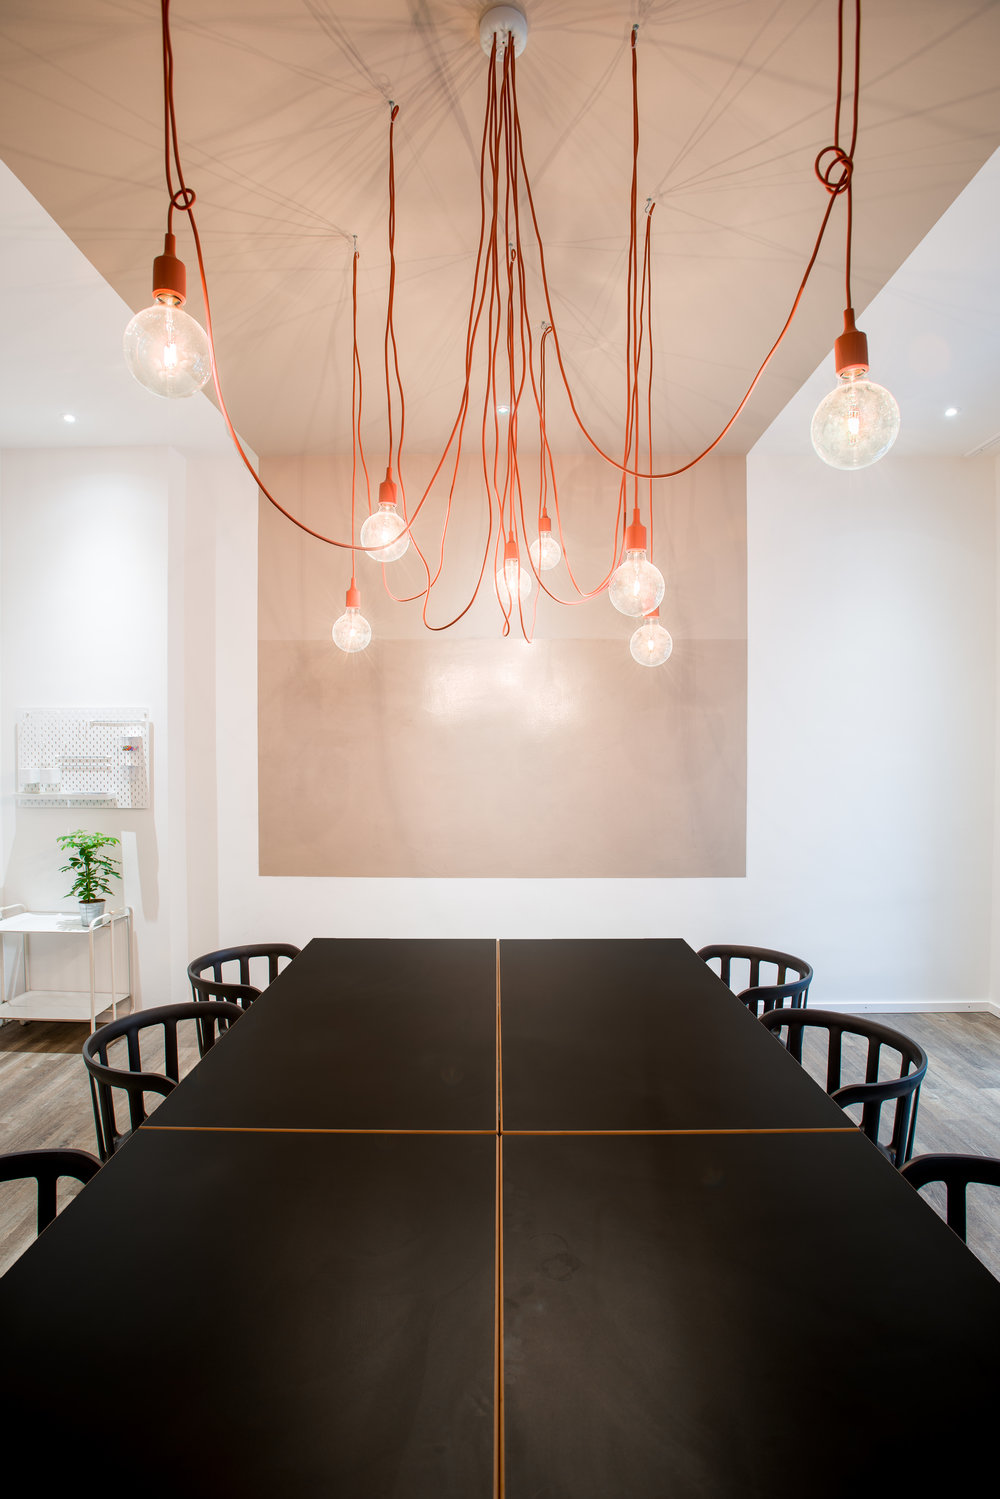 Mates Munich, Coworking, co-working space, communication, office, interior architecture, design, table, conference room, muuto, pendant light